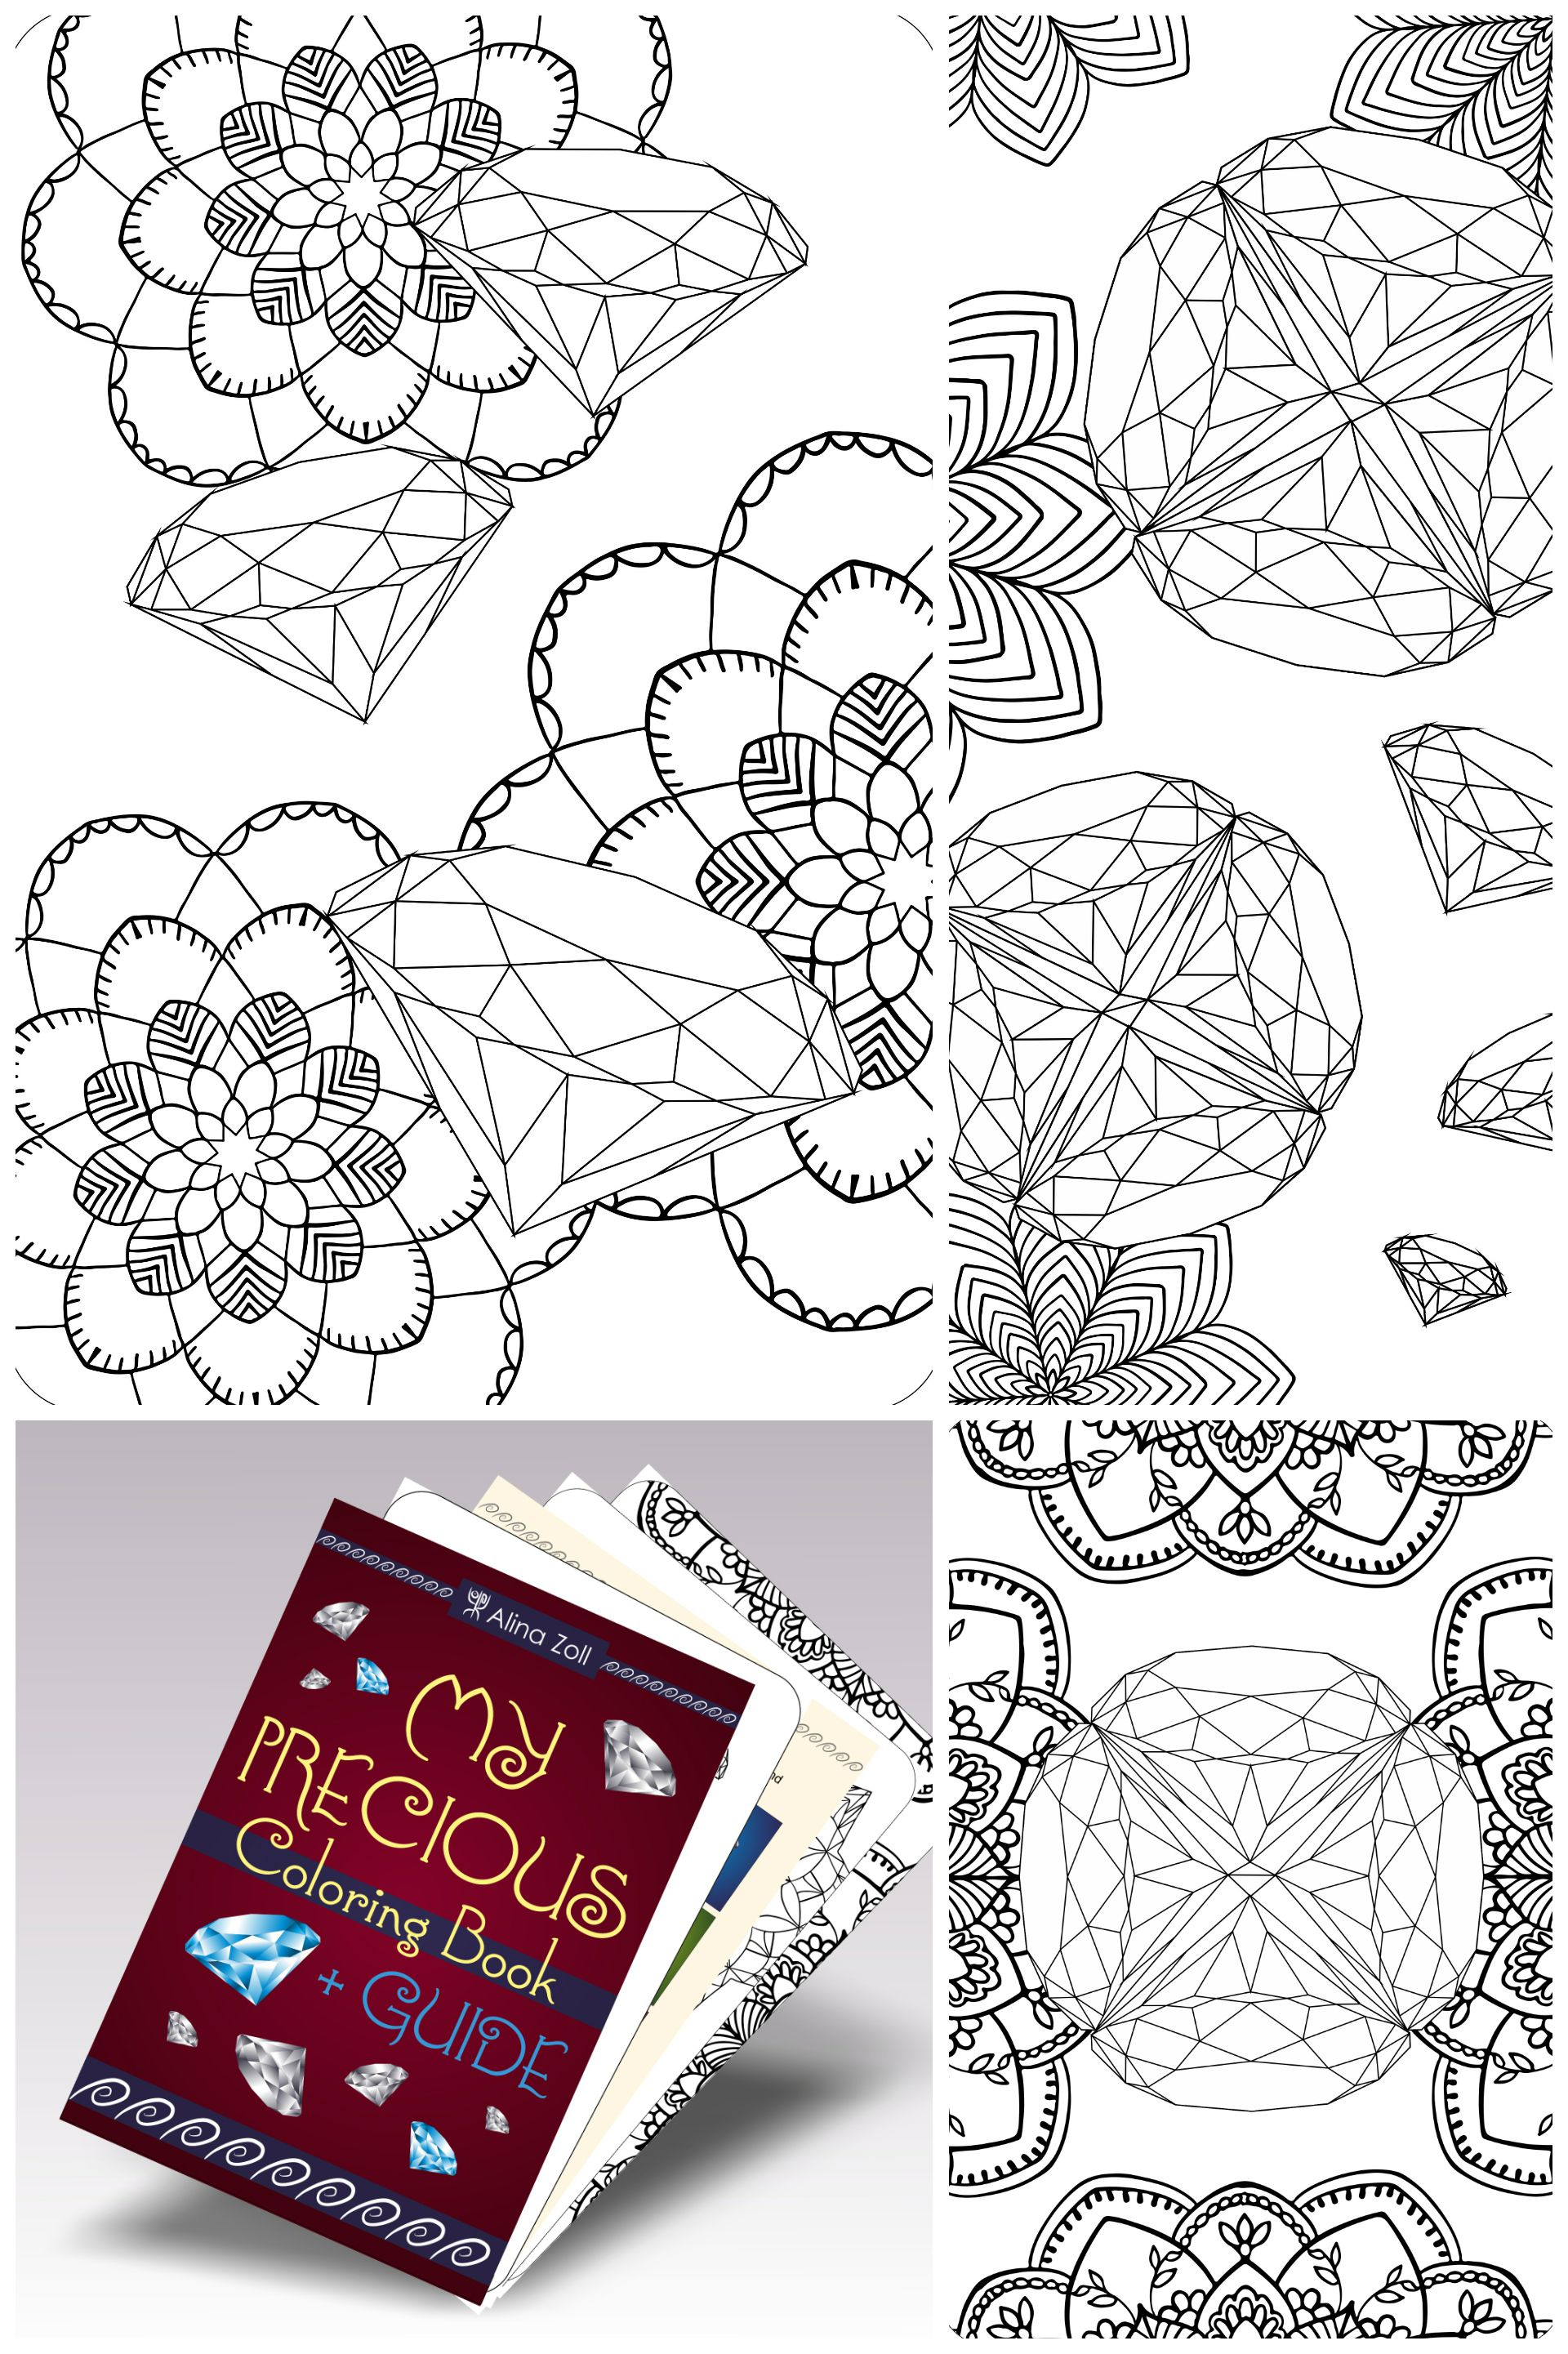 Digital Adult Coloring Book Gemstone Drawing Tutorial Pages With Diamond PDF Livre De Coloriage